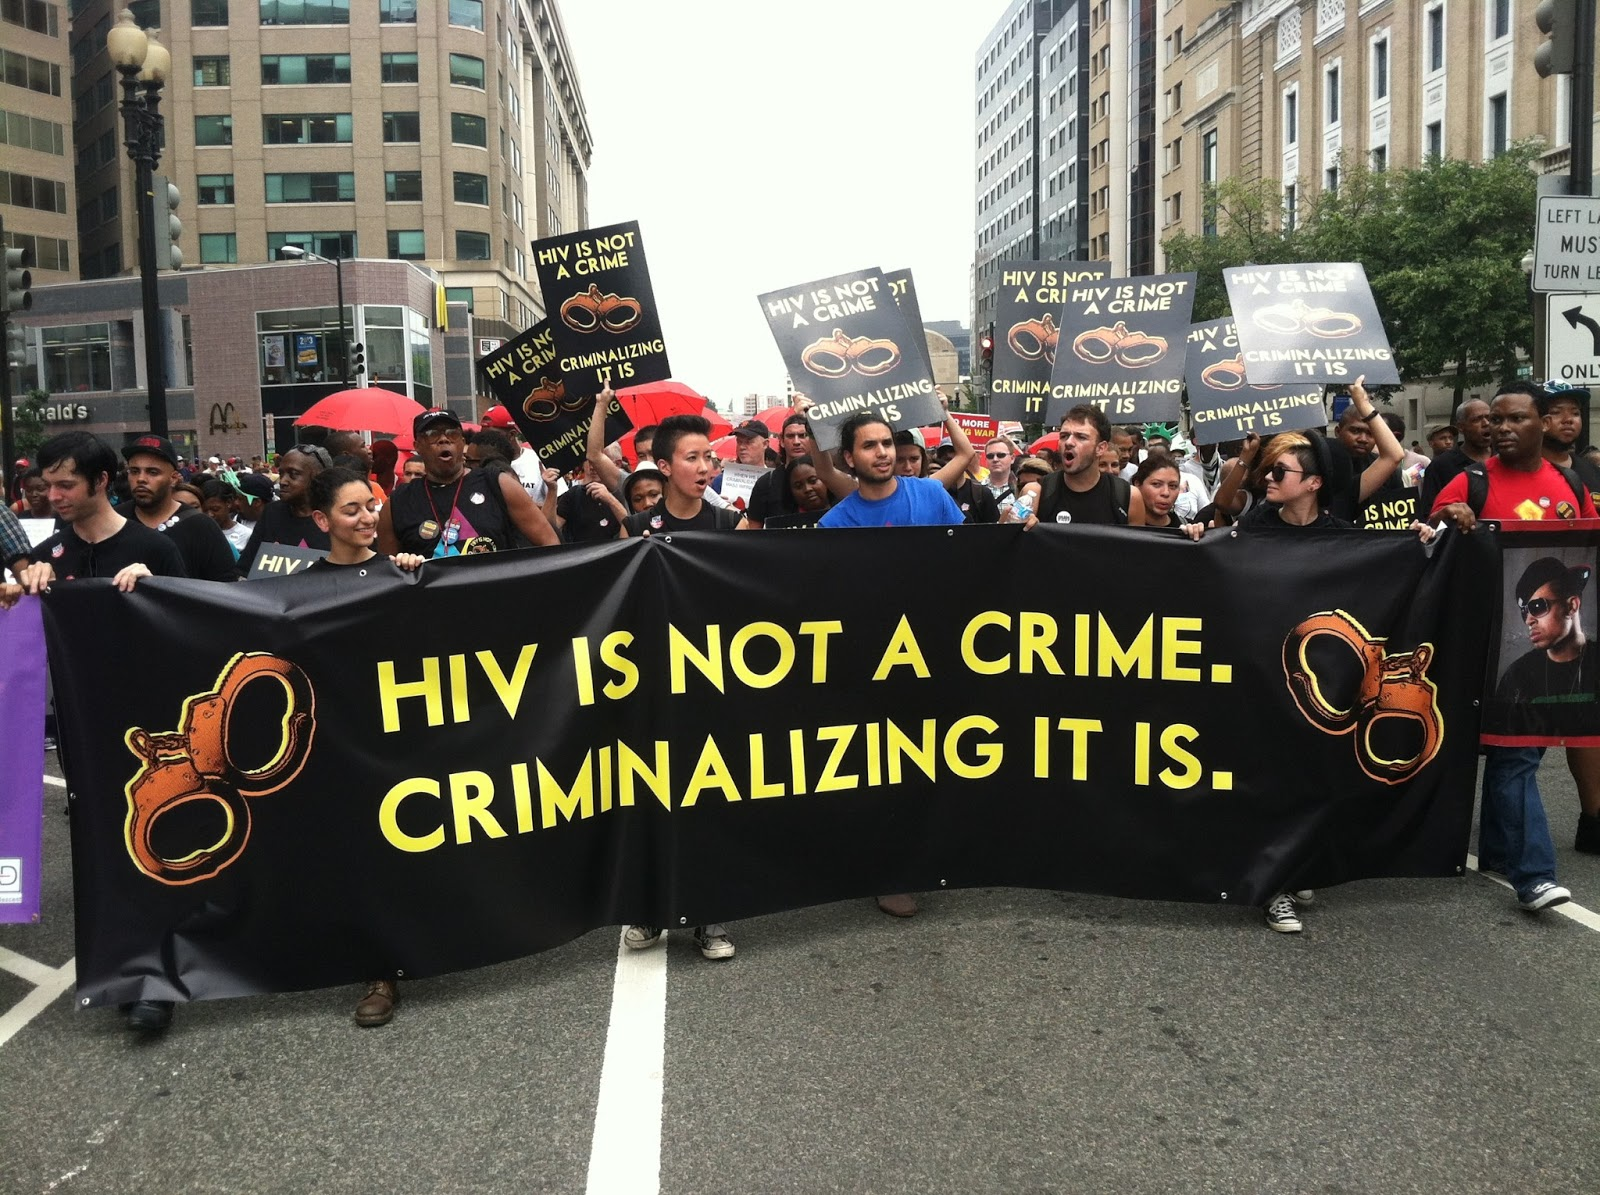 AIDS activism lives on: Queerocracy at a march